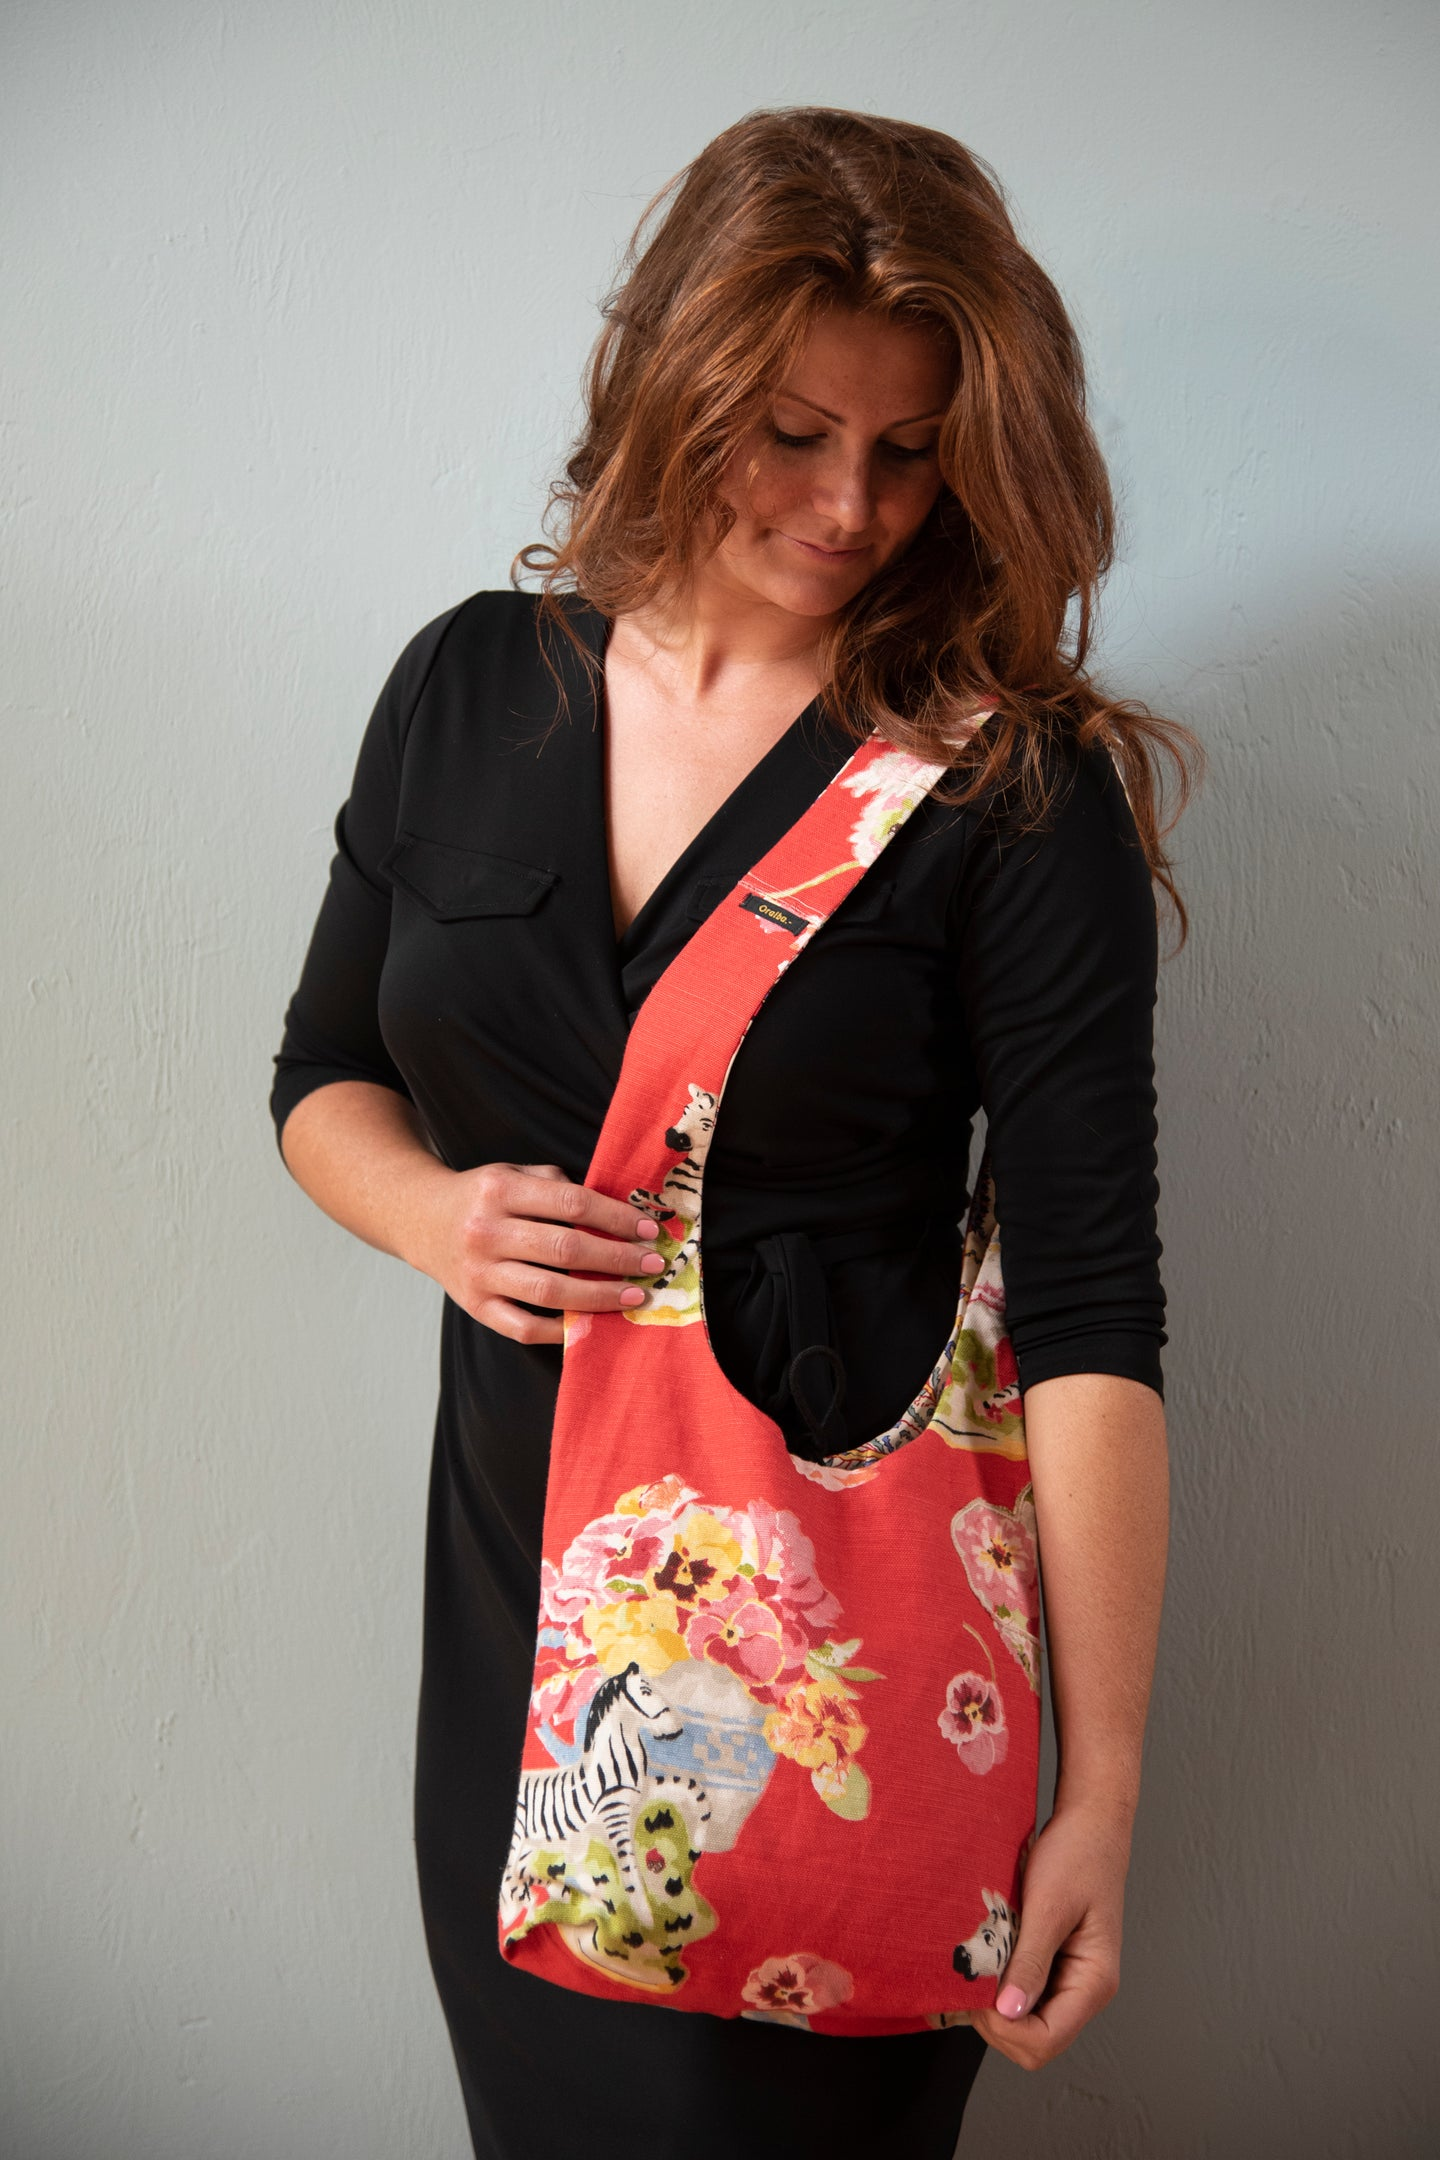 Reversible One-of-a-Kind Fabric Bag - Red Floral with Zebra